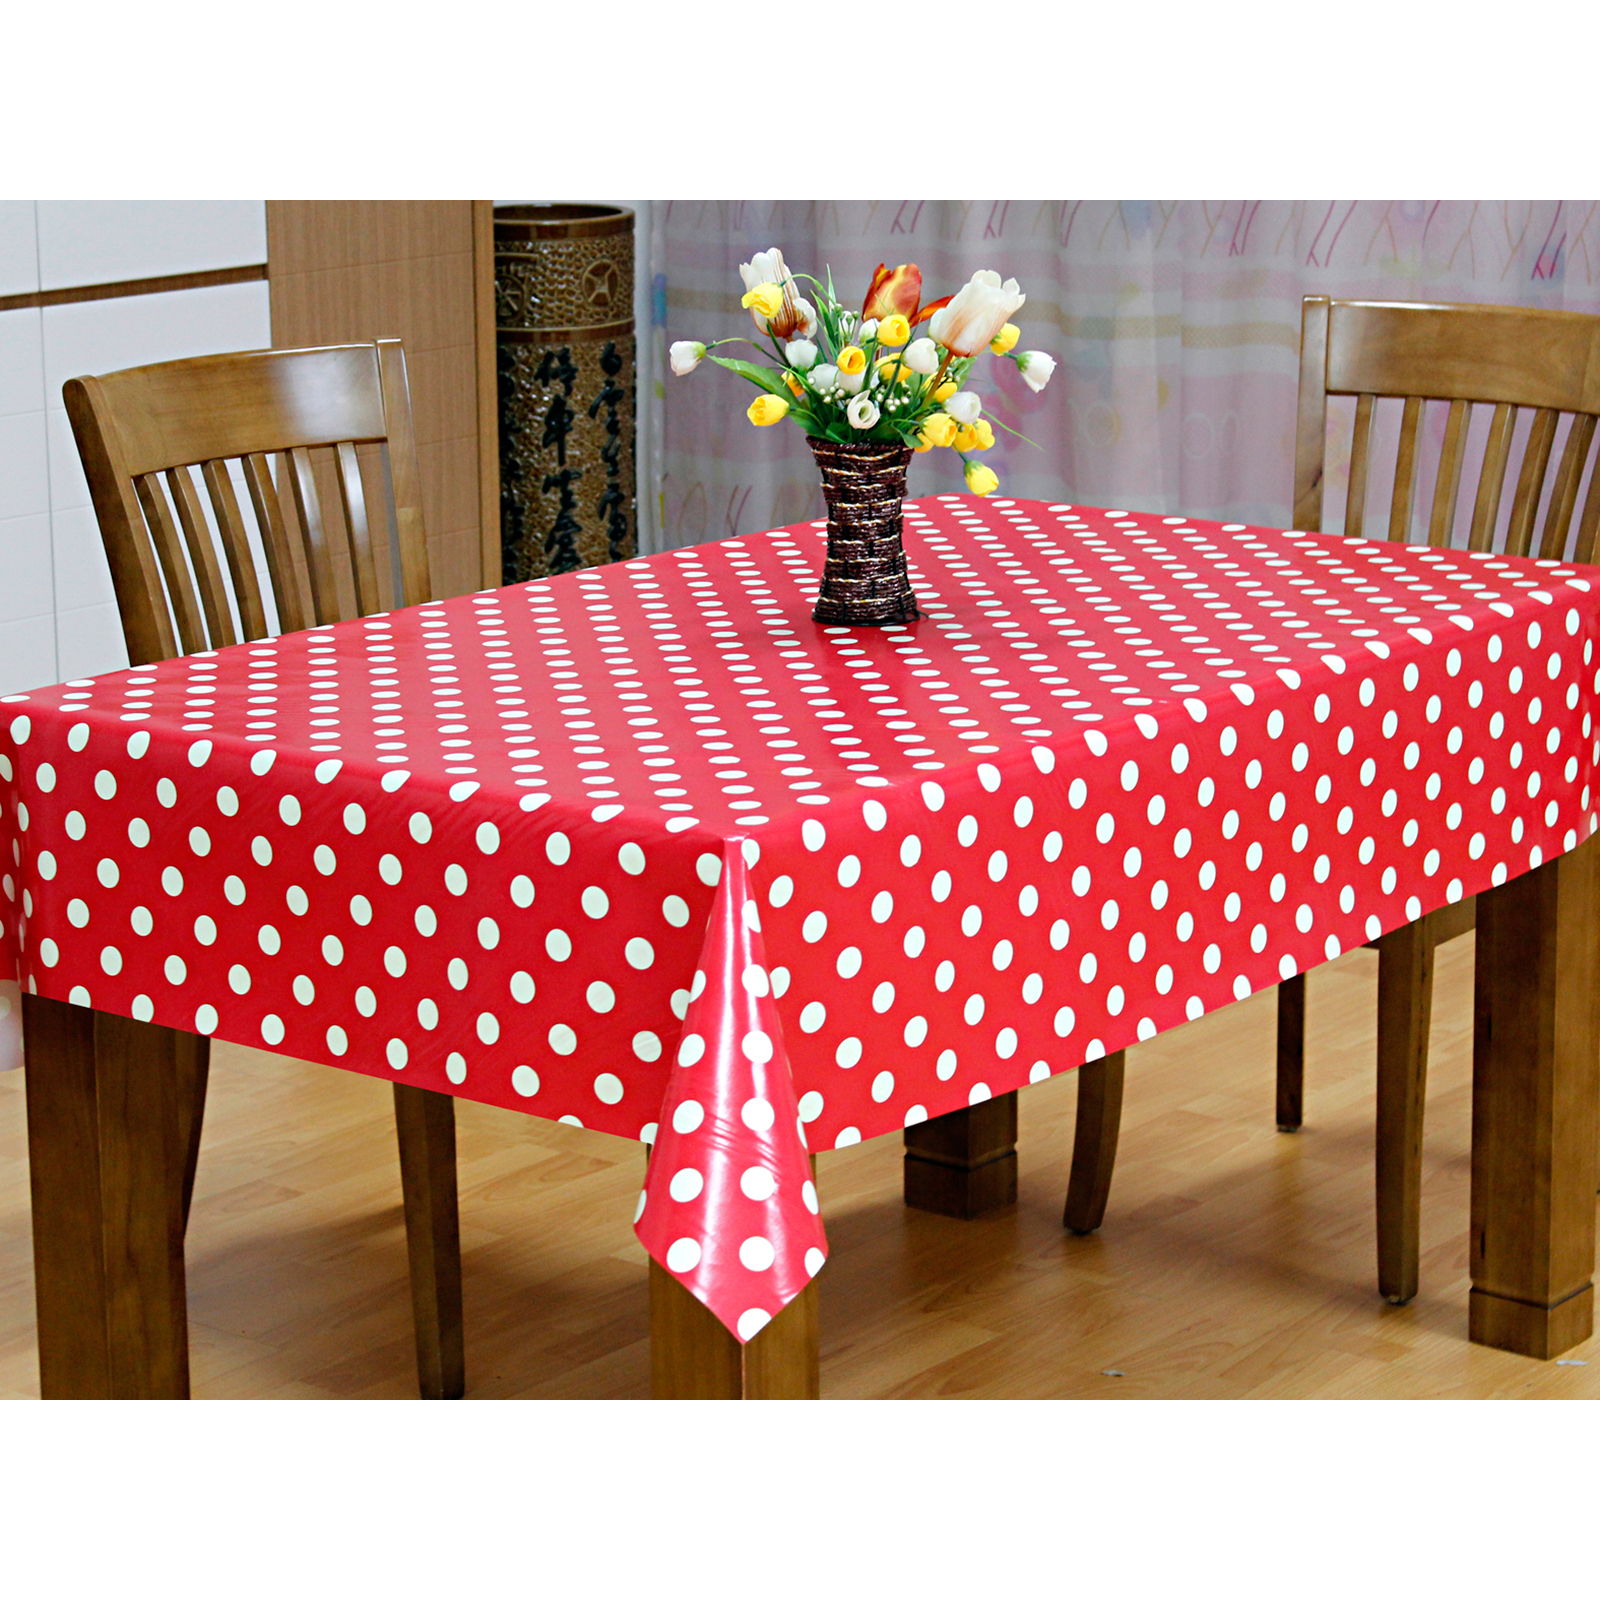 Wipe Clean Pvc Vinyl Tablecloth Dining Kitchen Table Cover. Designer Kitchen Chairs. Small Corner Kitchen Design. Kitchen Design Lighting. L Shaped Kitchen Design Ideas. Kitchen Design With Dark Cabinets. Angled Kitchen Island Designs. Modern Kitchen Dining Room Design. Good Kitchen Design Layouts